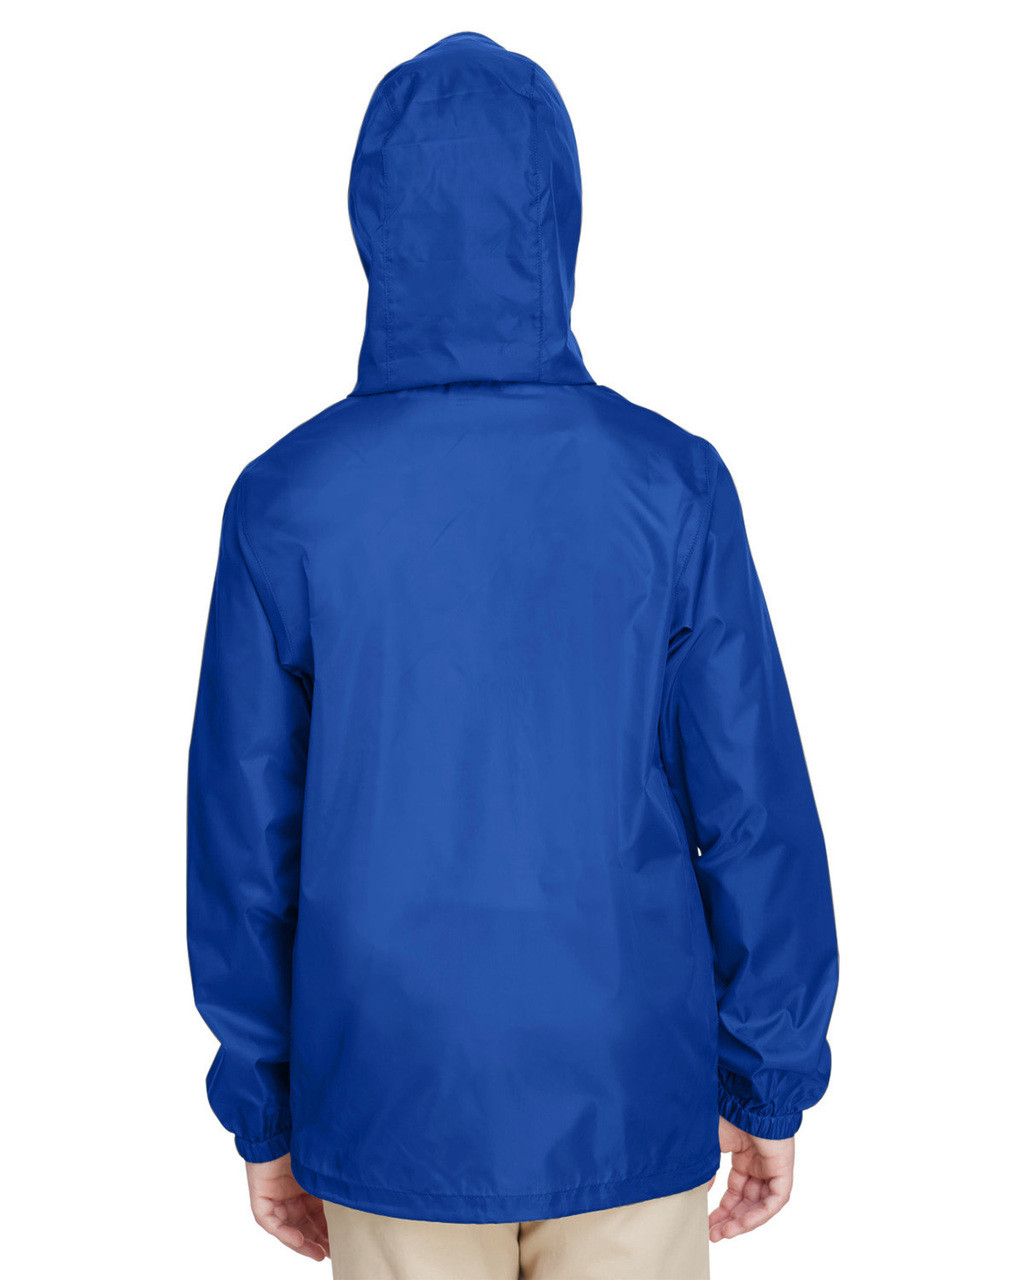 Sport Royal, Back - TT73Y Team 365 Youth Zone Protect Lightweight Jacket  | BlankClothing.ca